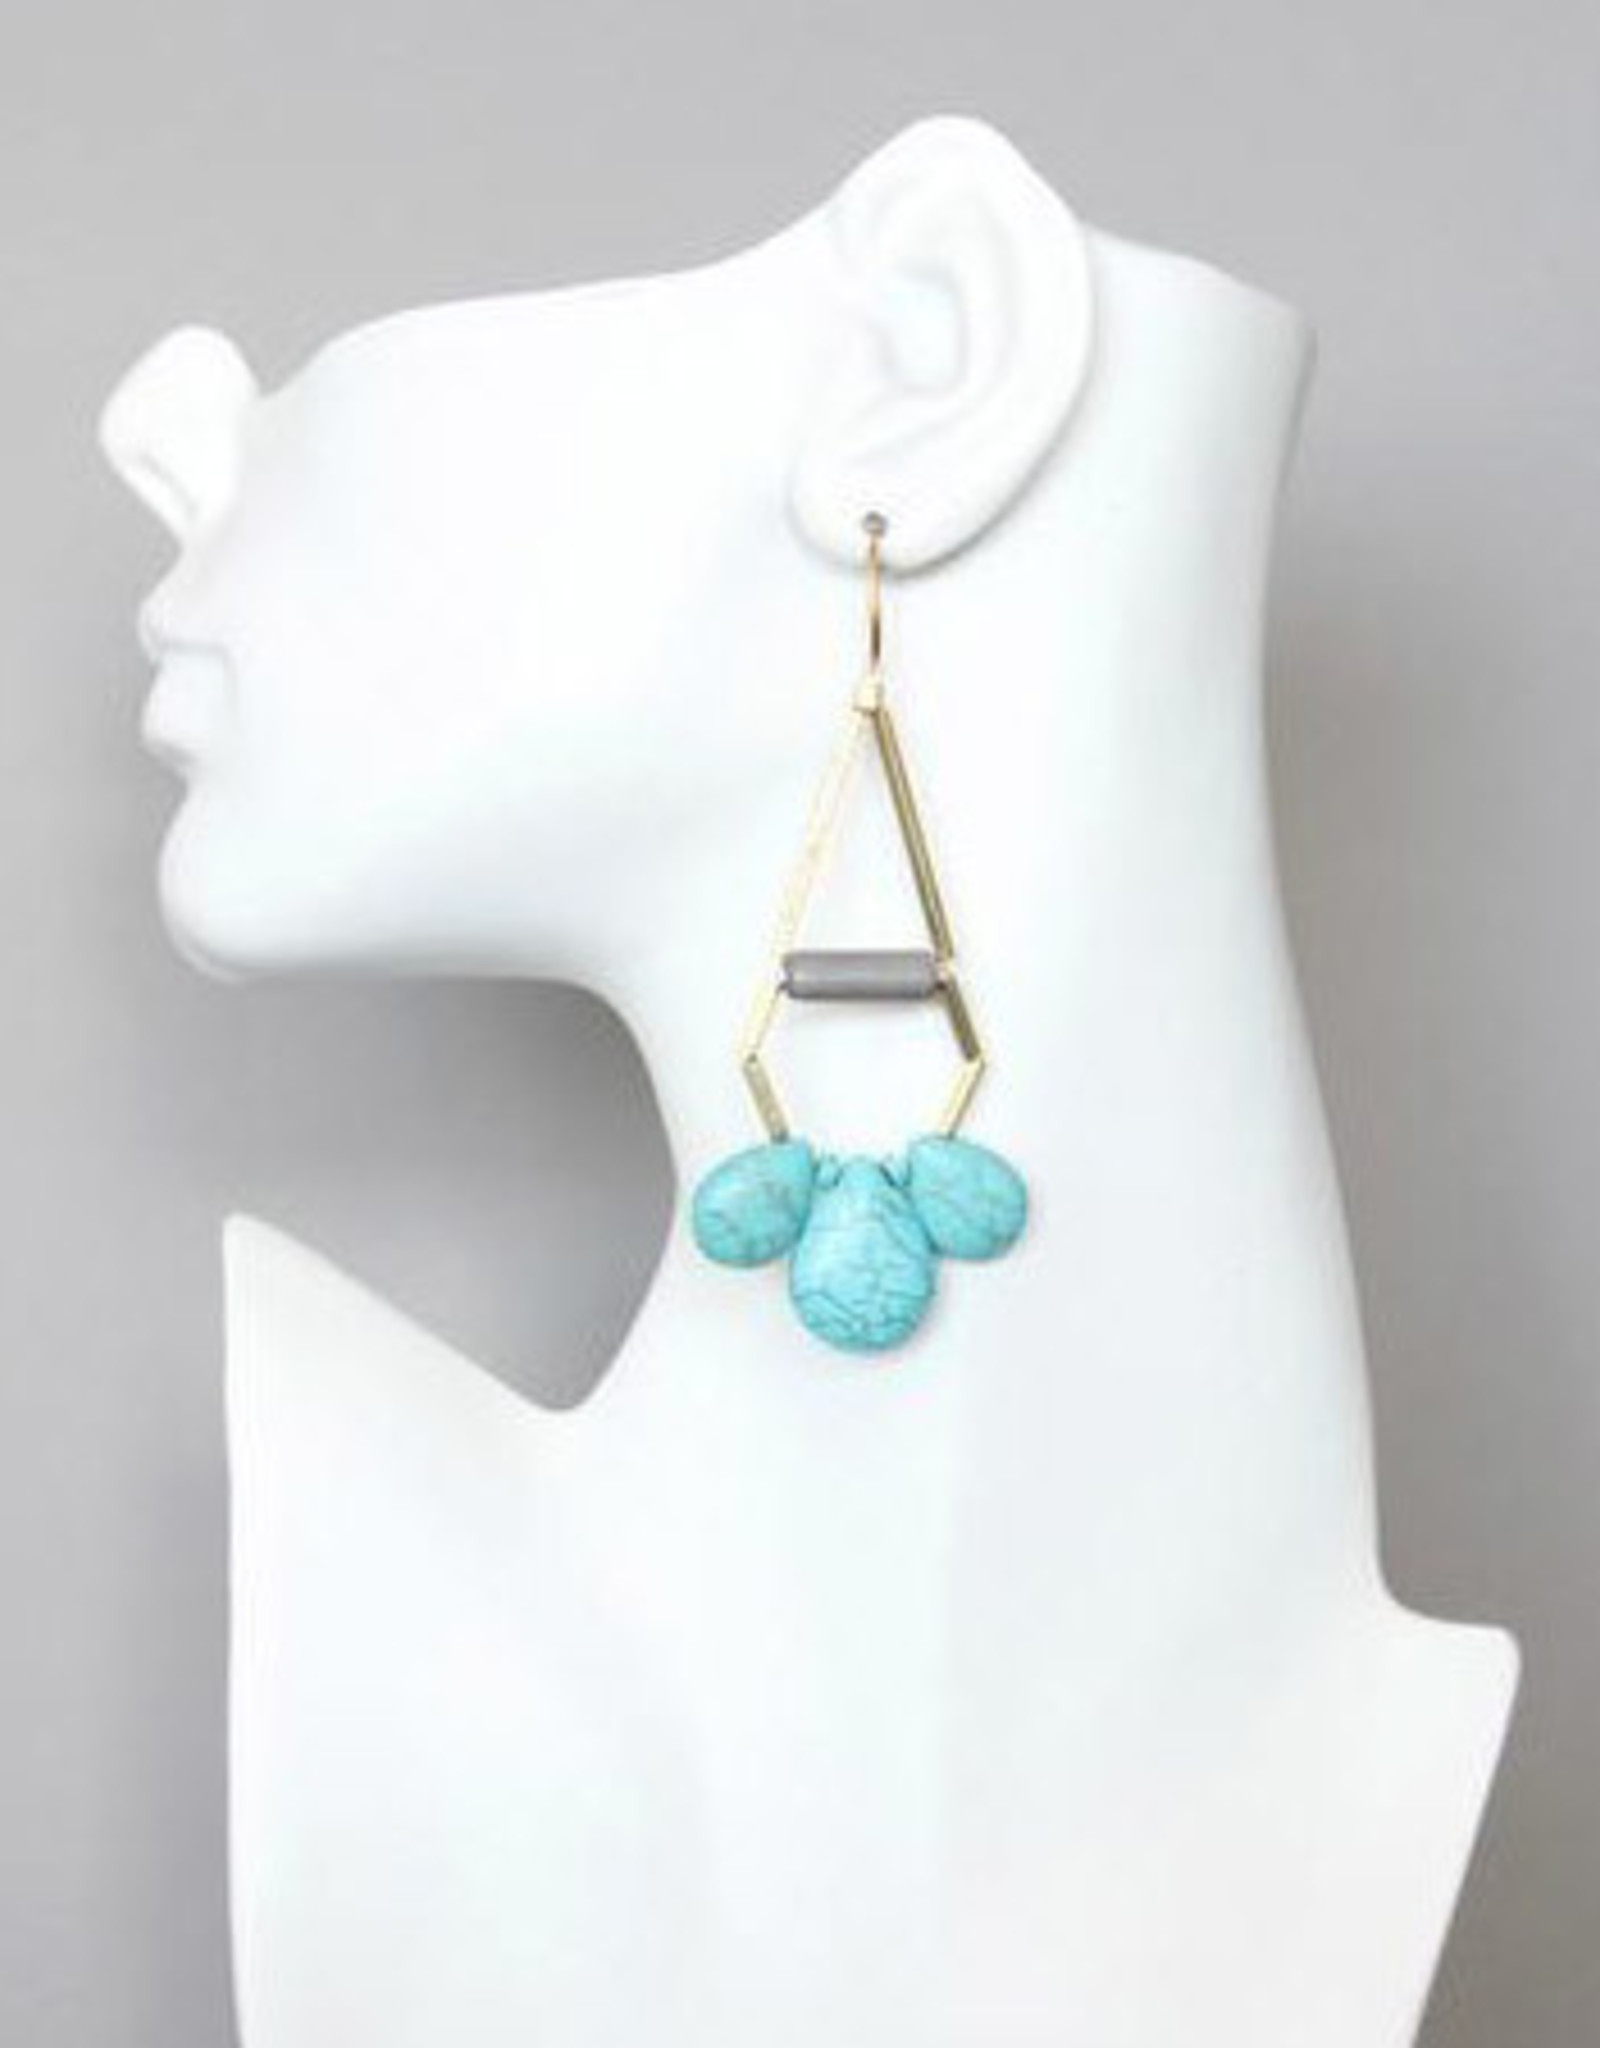 David Aubrey Long Brass Tube Earrings with Blue Howlite Teardrops - David Aubrey